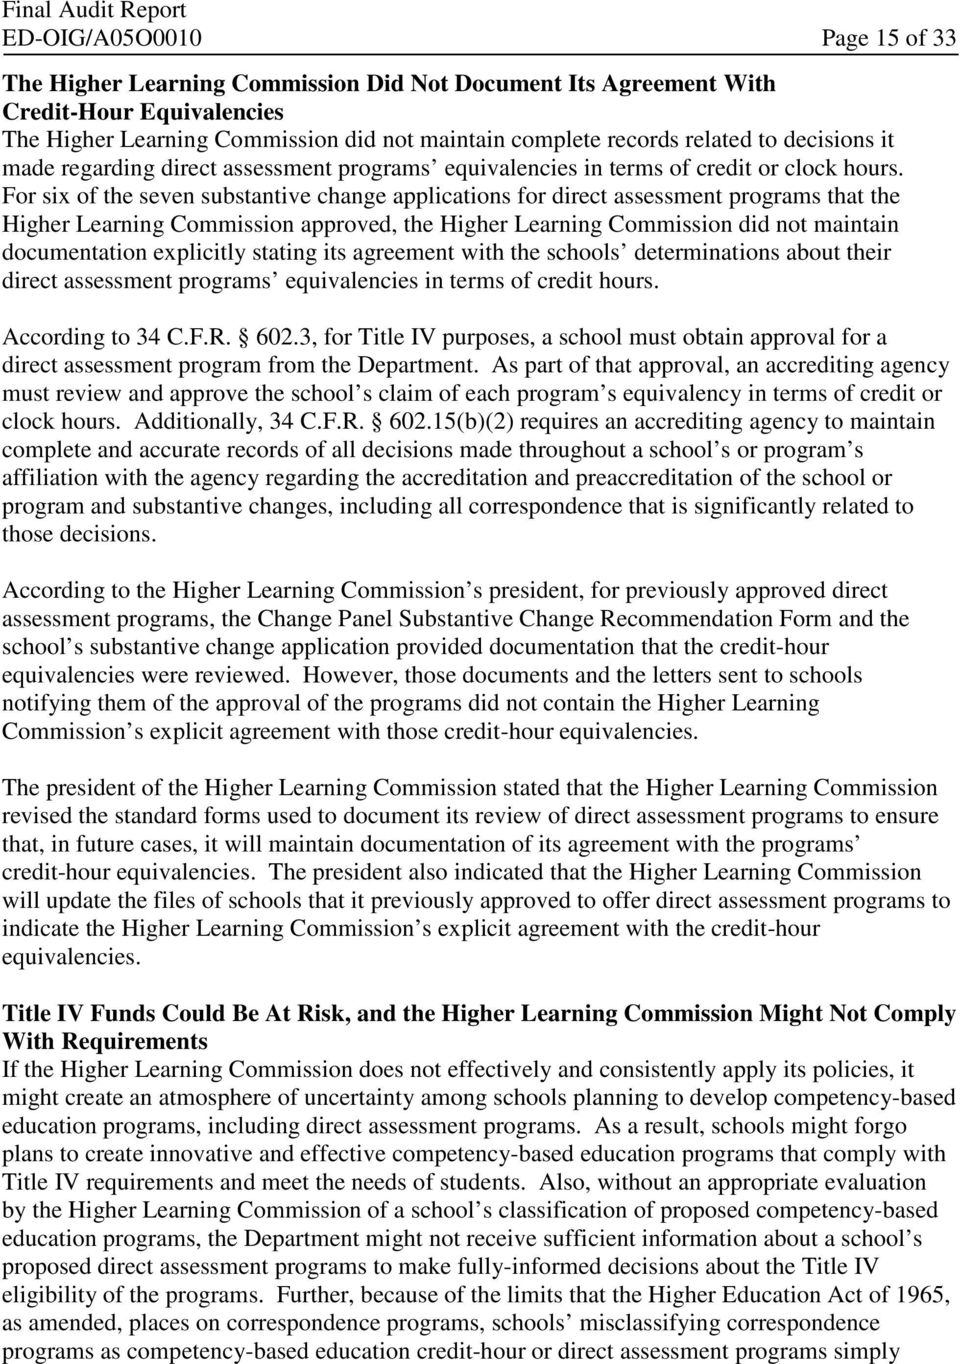 For six of the seven substantive change applications for direct assessment programs that the Higher Learning Commission approved, the Higher Learning Commission did not maintain documentation